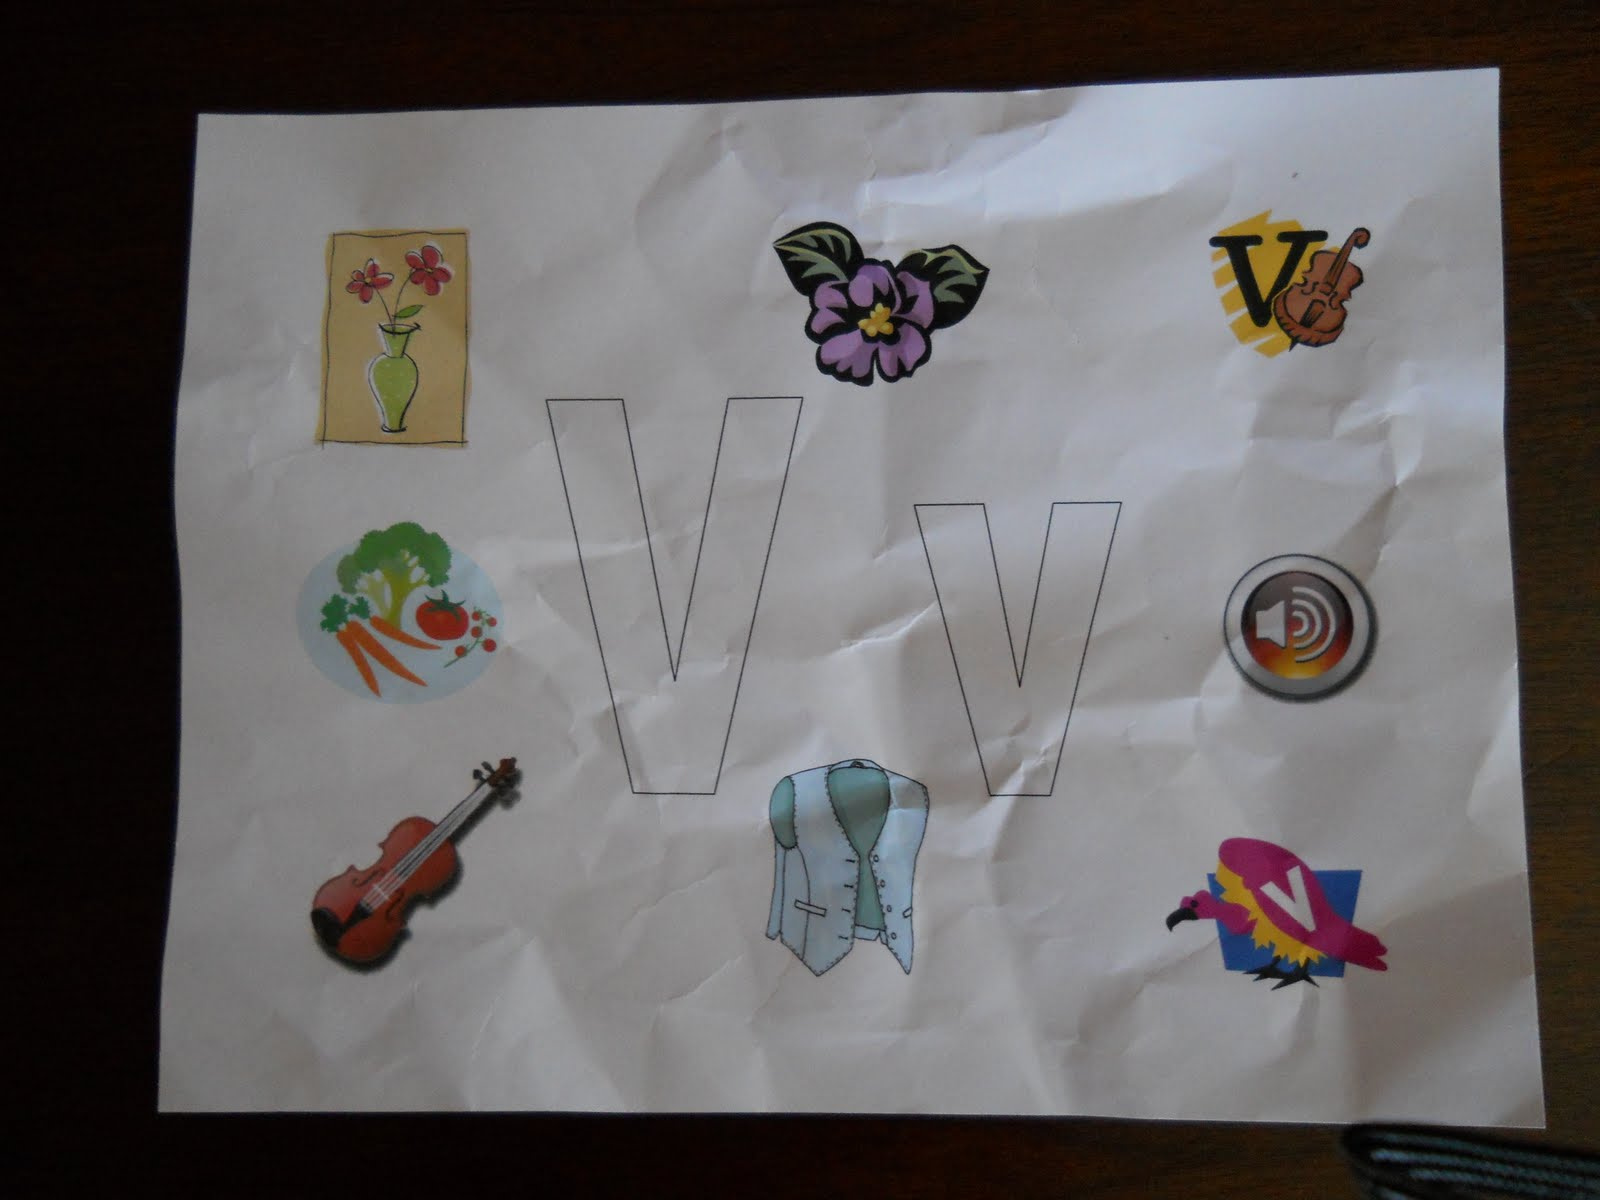 Objects Starting with Letter A http://adayfamacademy.blogspot.com/2010/05/tot-school-letter-v.html